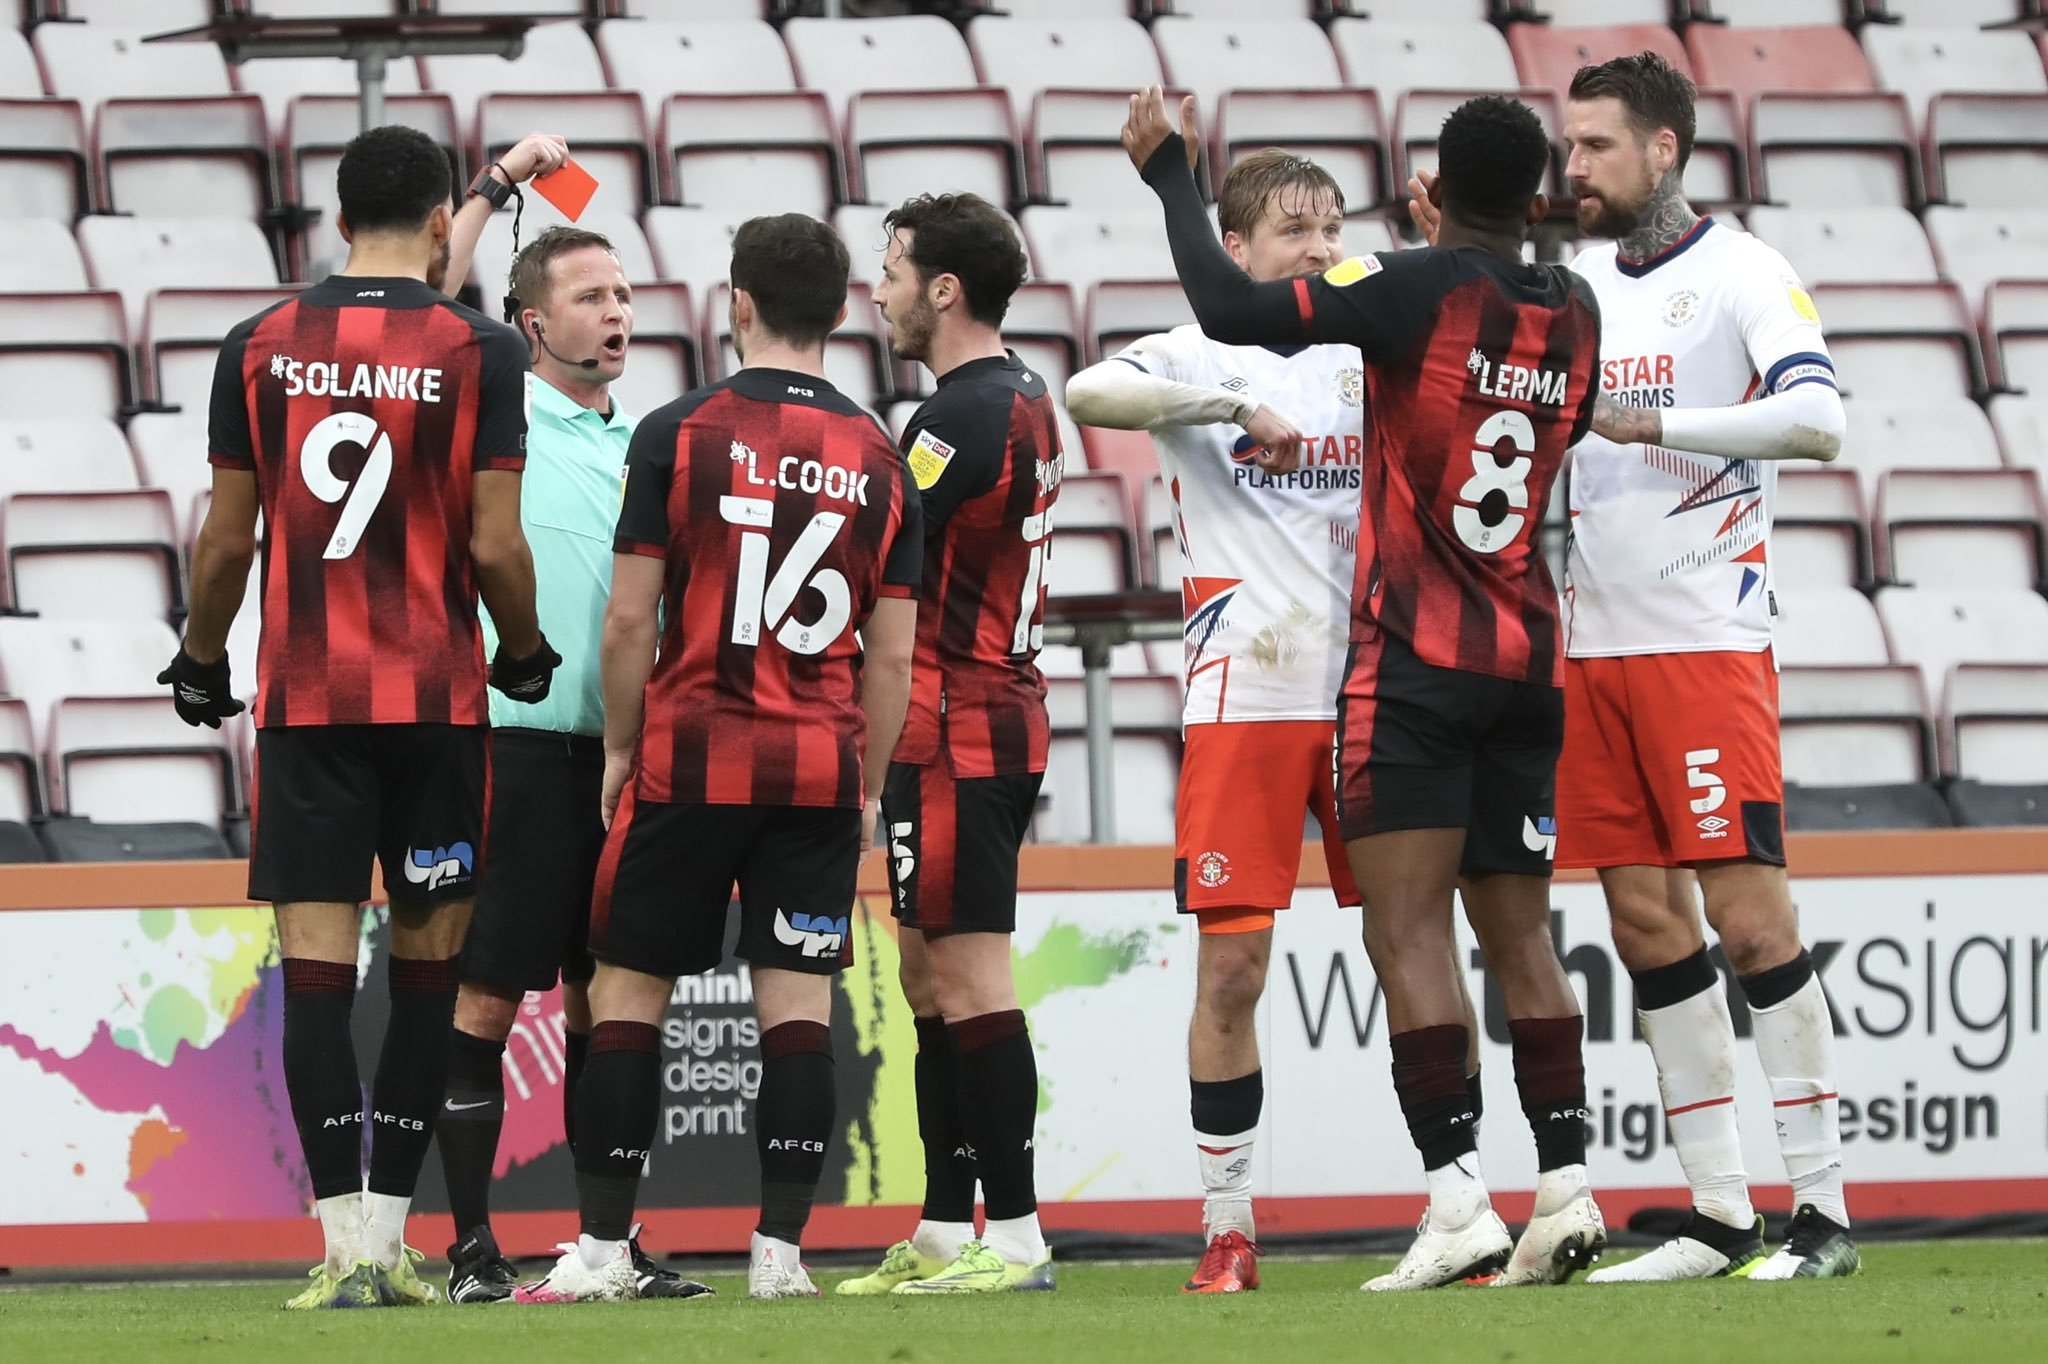 Jefferson Lerma sent off as Cherries fall at home to Luton